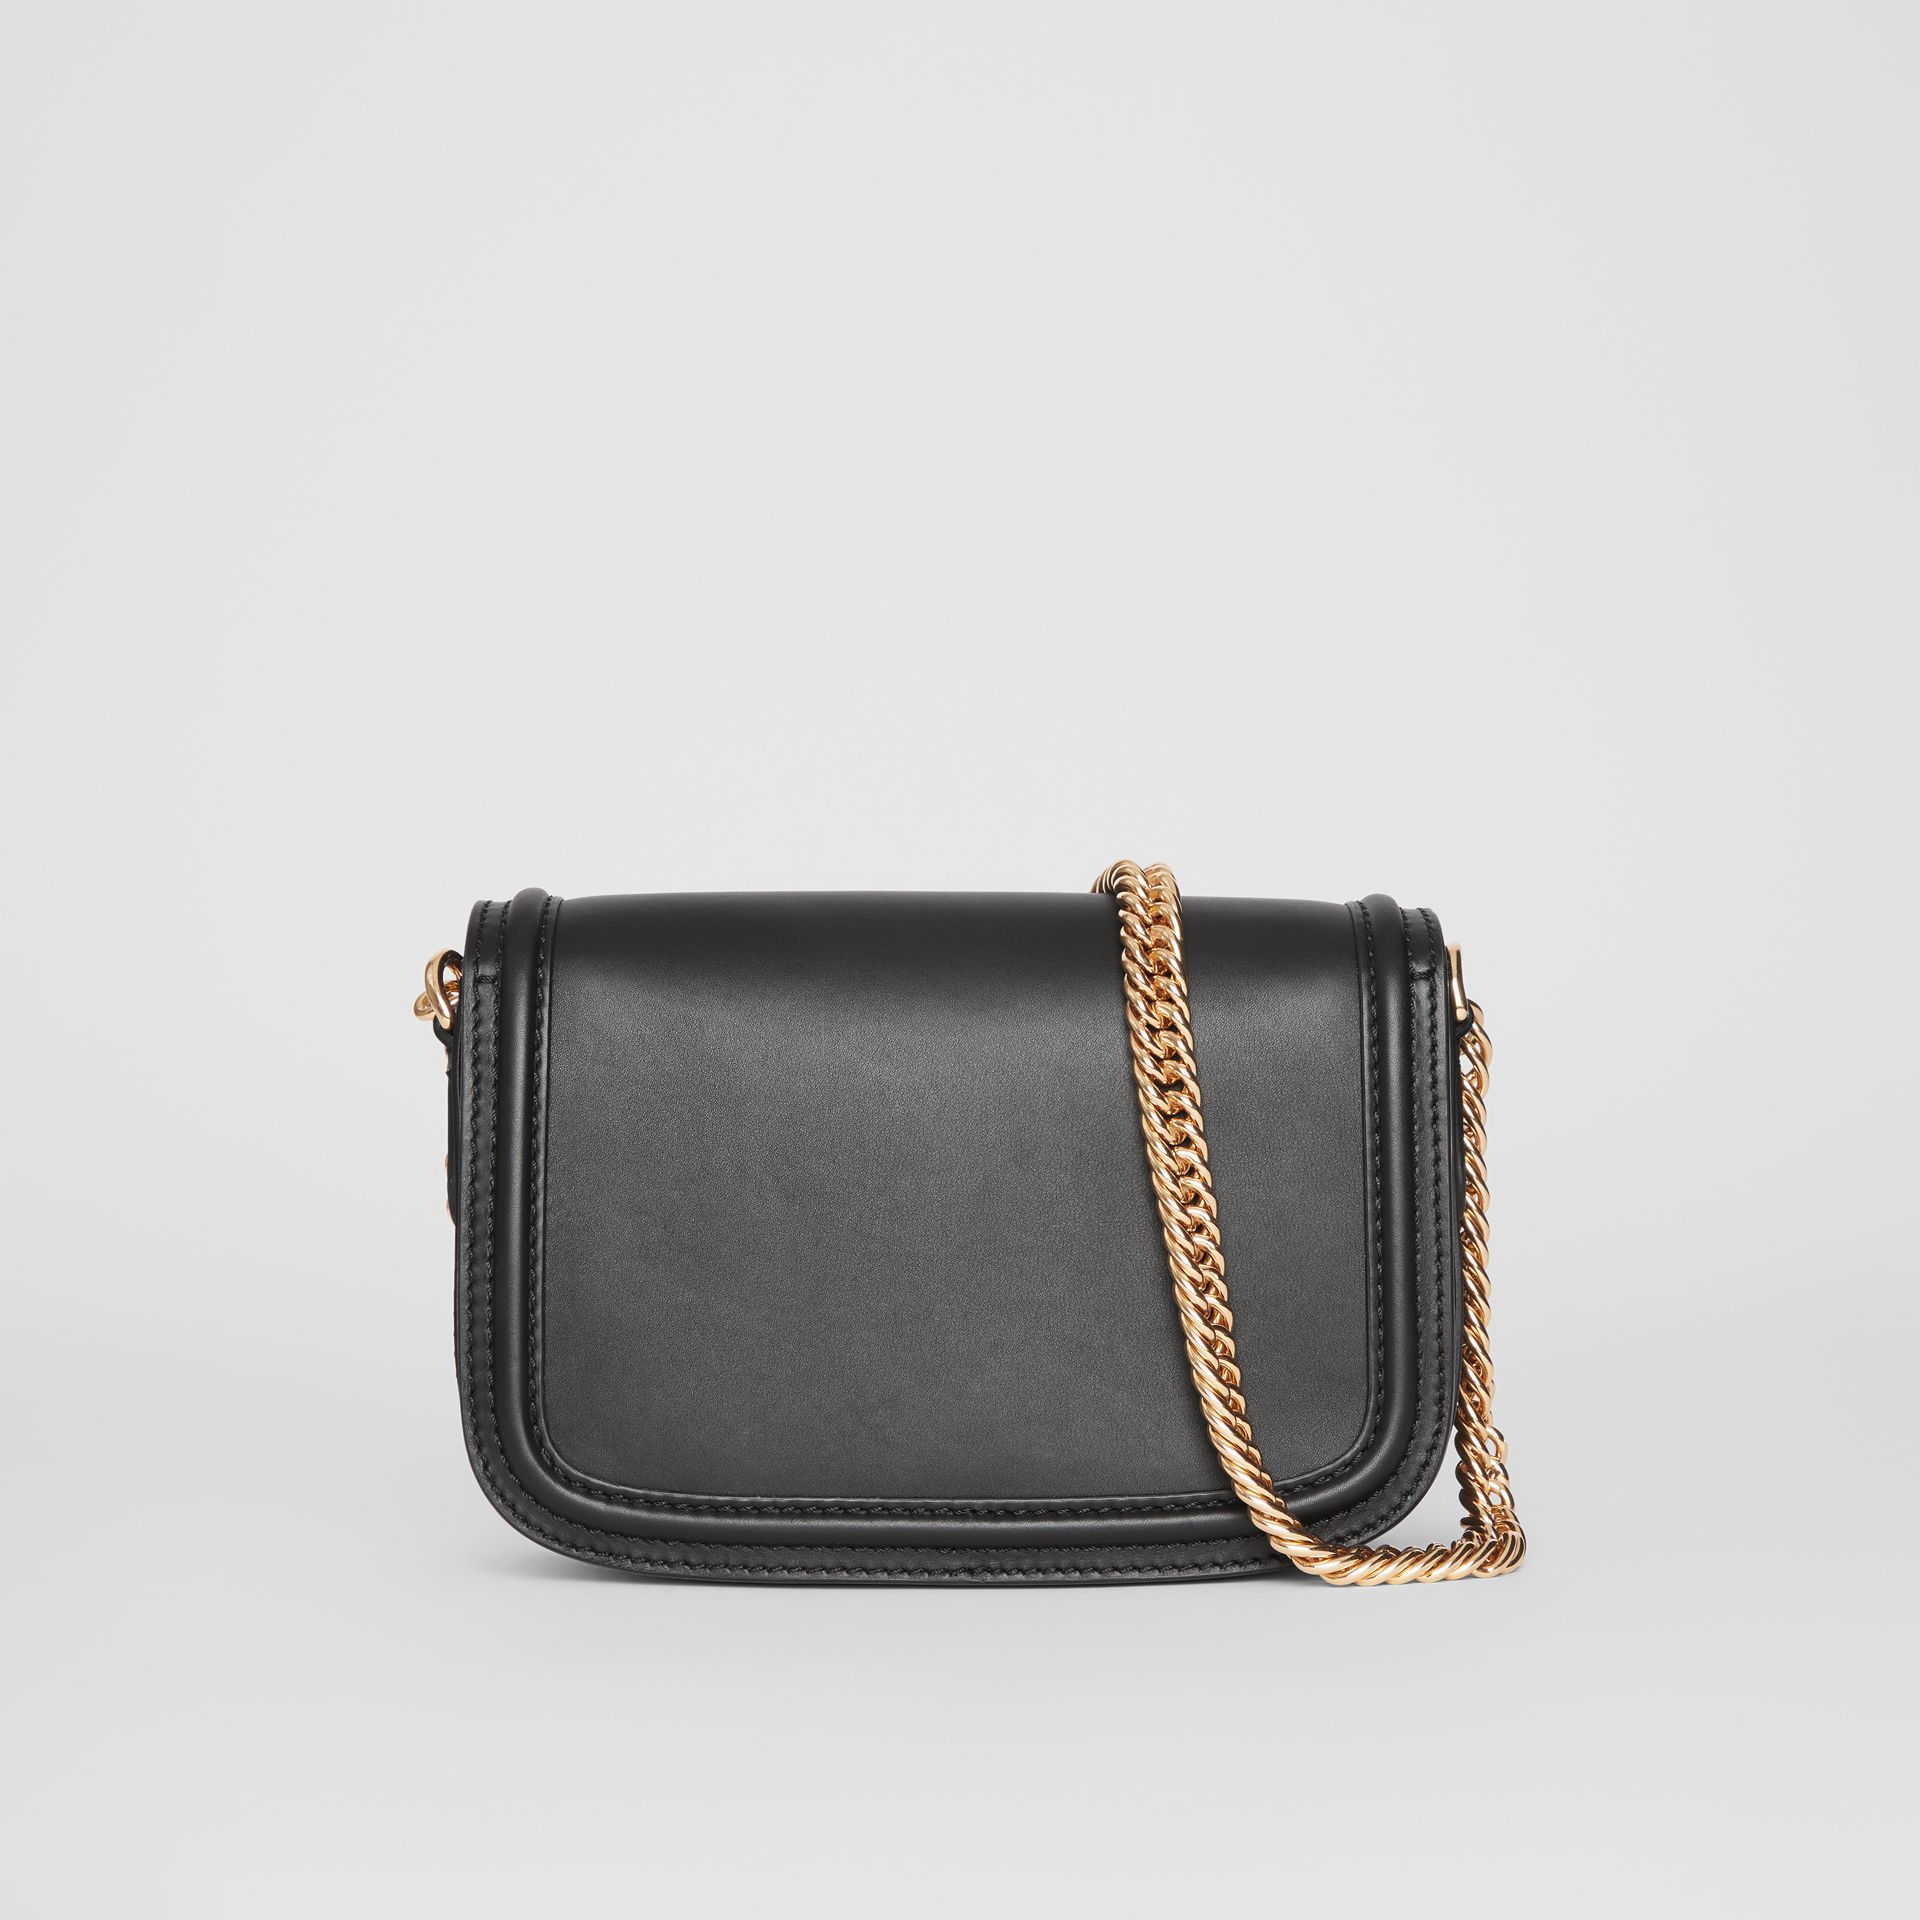 Sac The Link en cuir (Noir) - Femme | Burberry - photo de la galerie 7